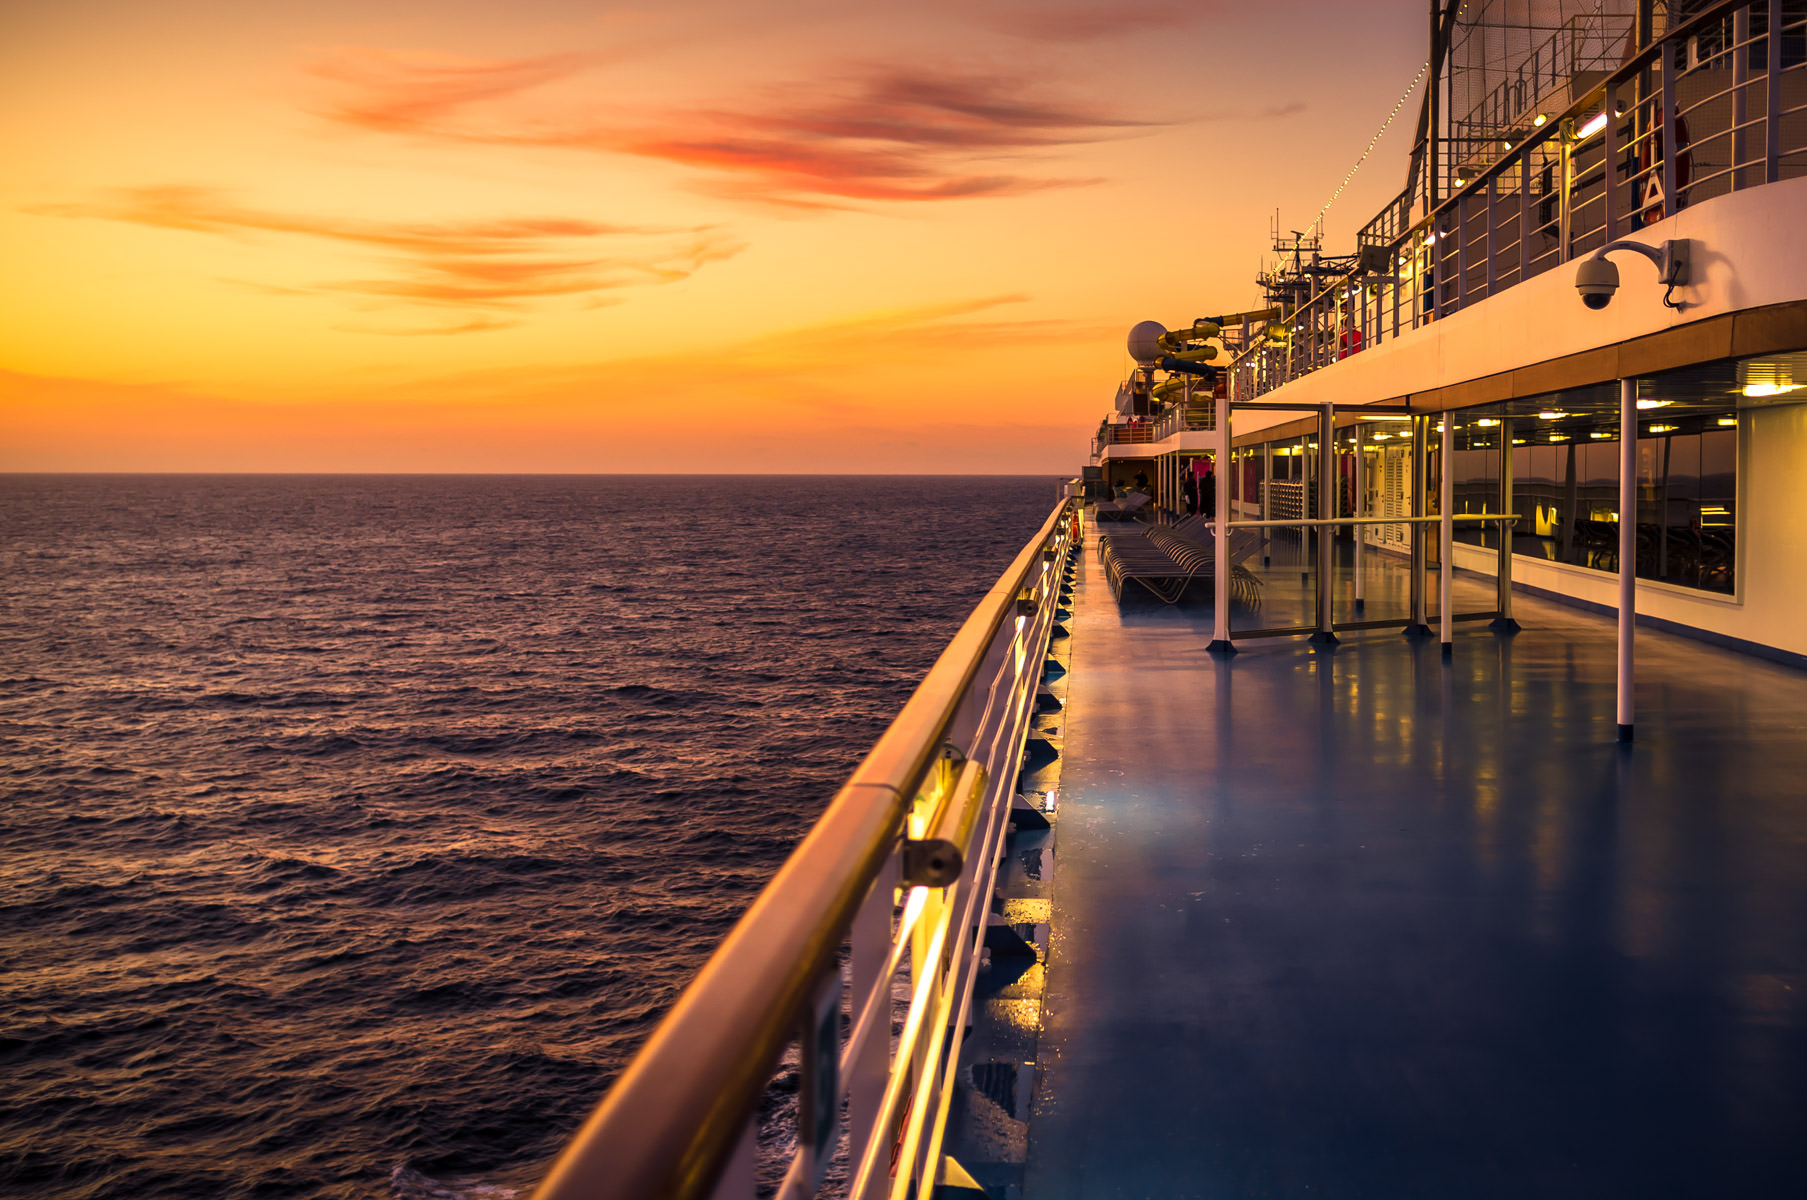 The golden light of the morning sun's first rays illuminates the cruise ship Carnival Magic somewhere in the Gulf of Mexico.